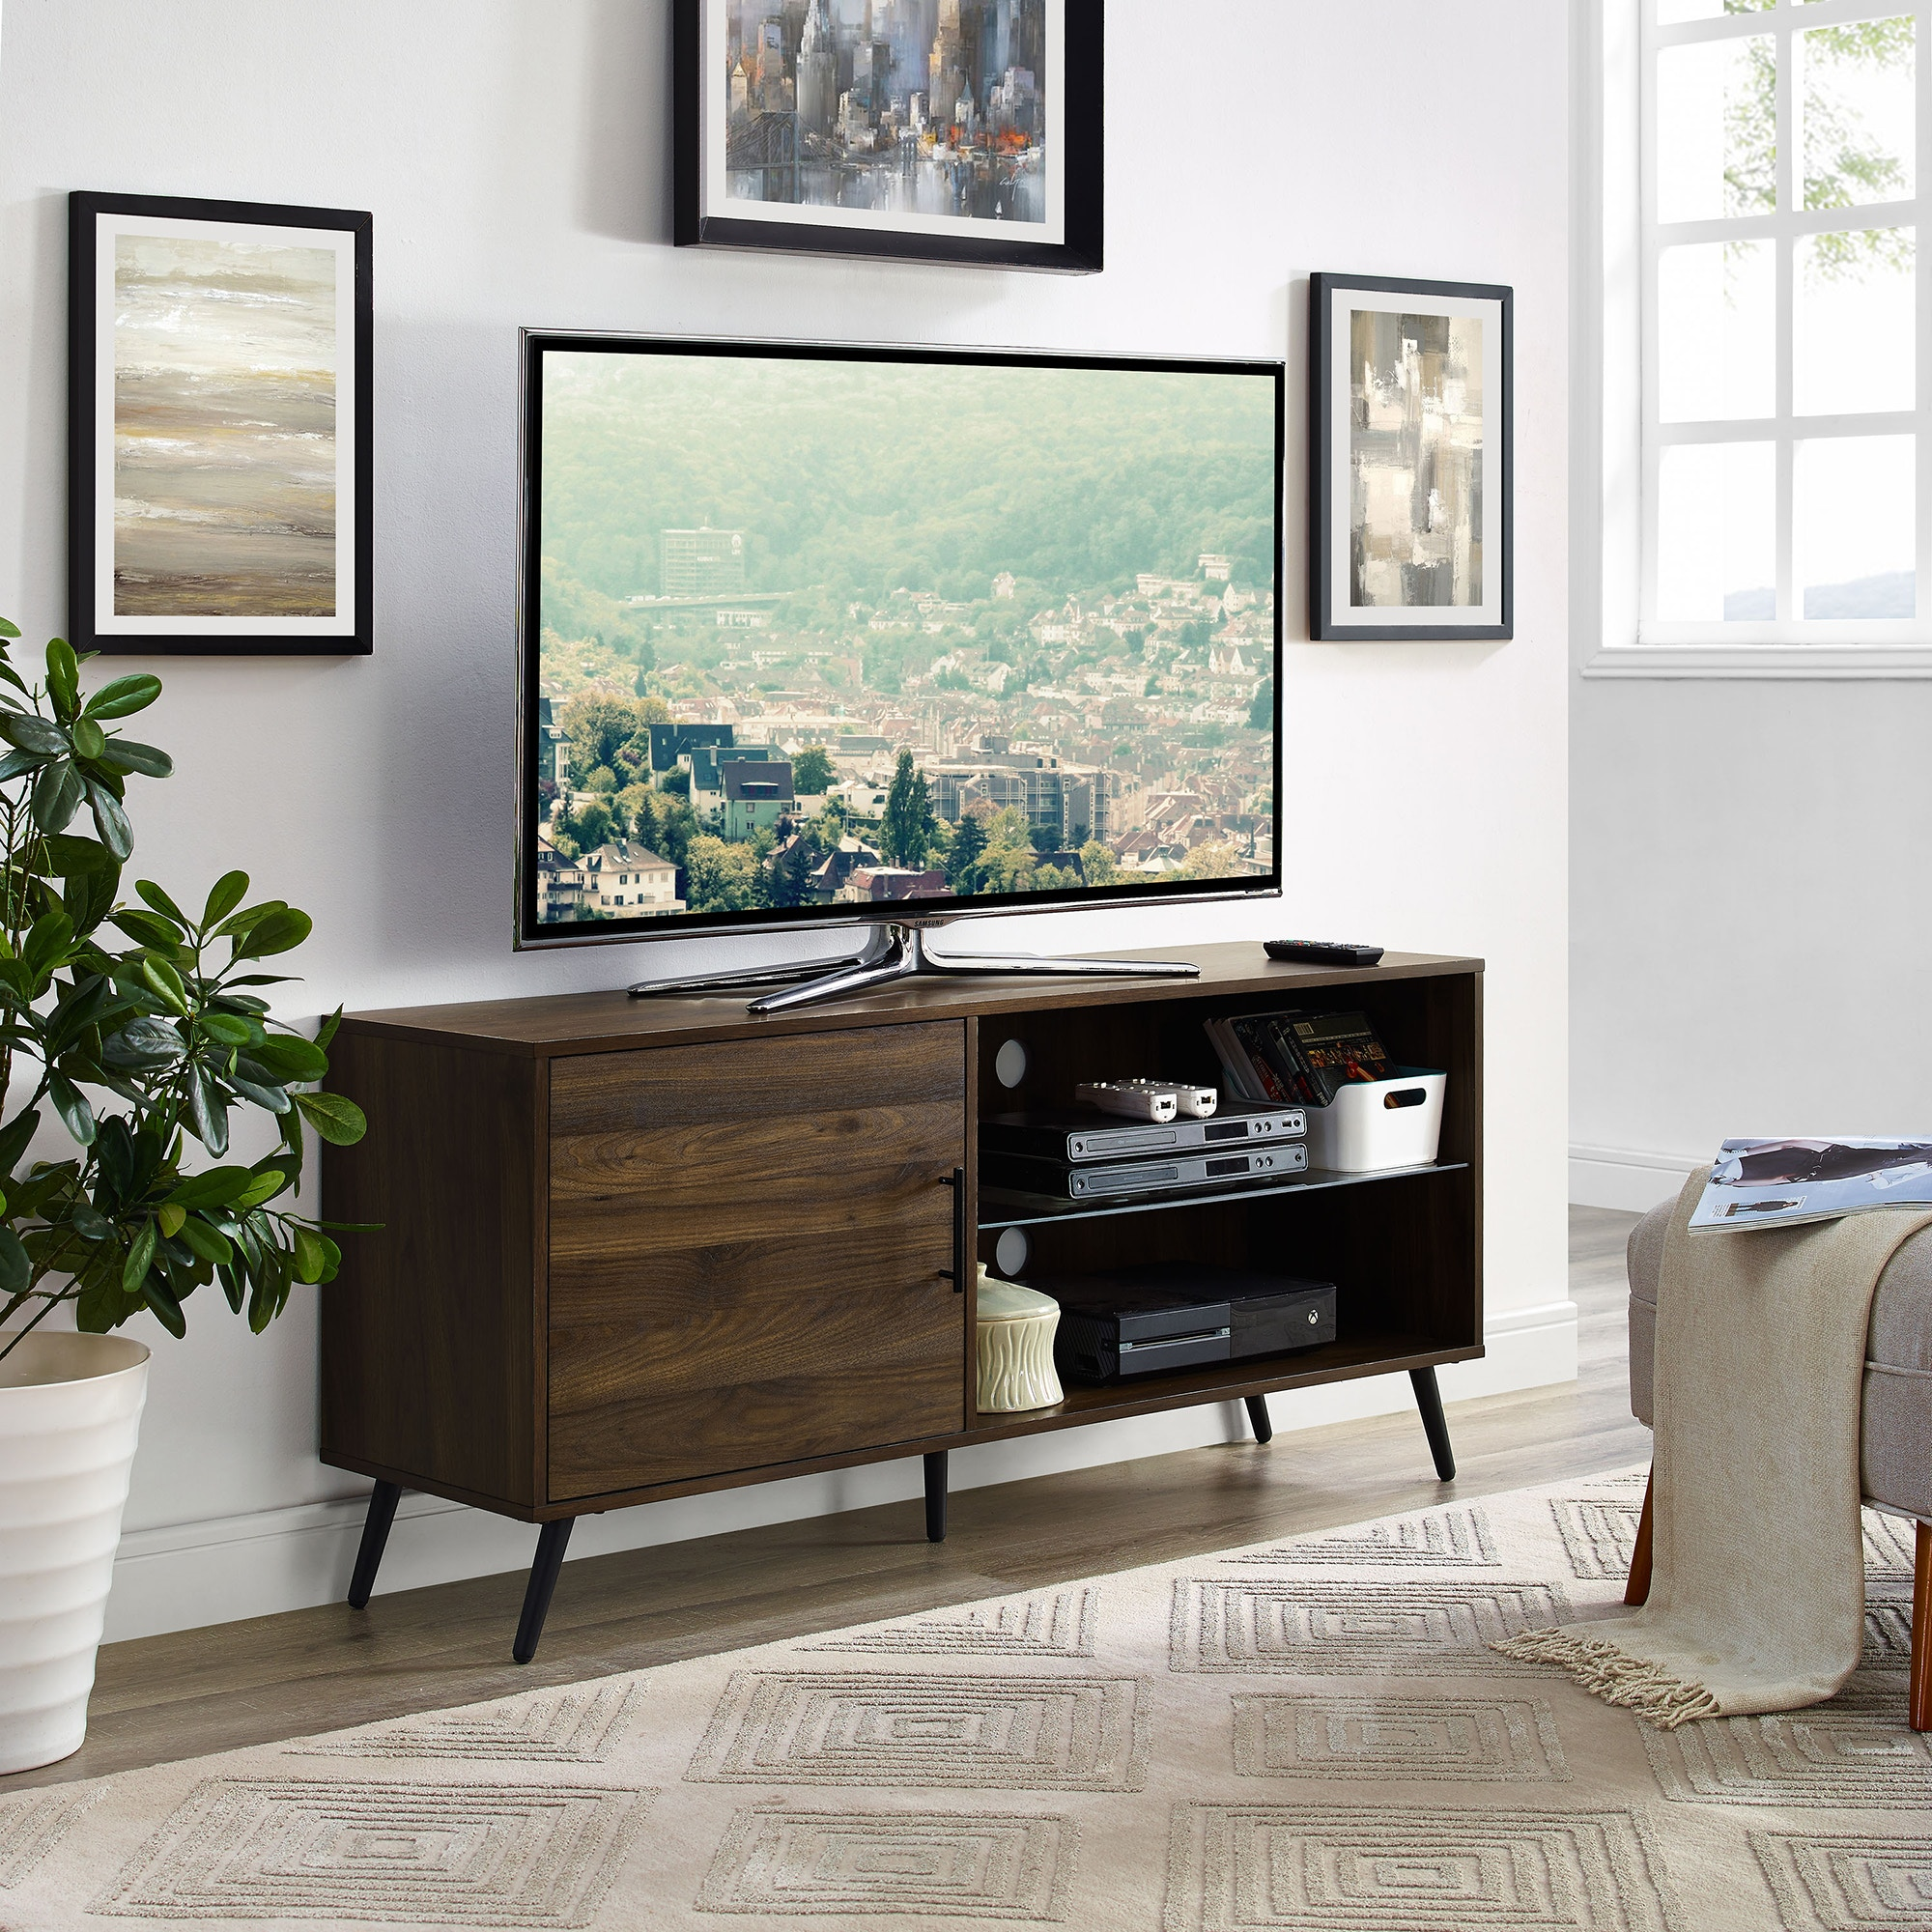 Ft Myers 52u0027u0027 Mid Century Modern TV Stand Media Storage Console  Entertainment Center With